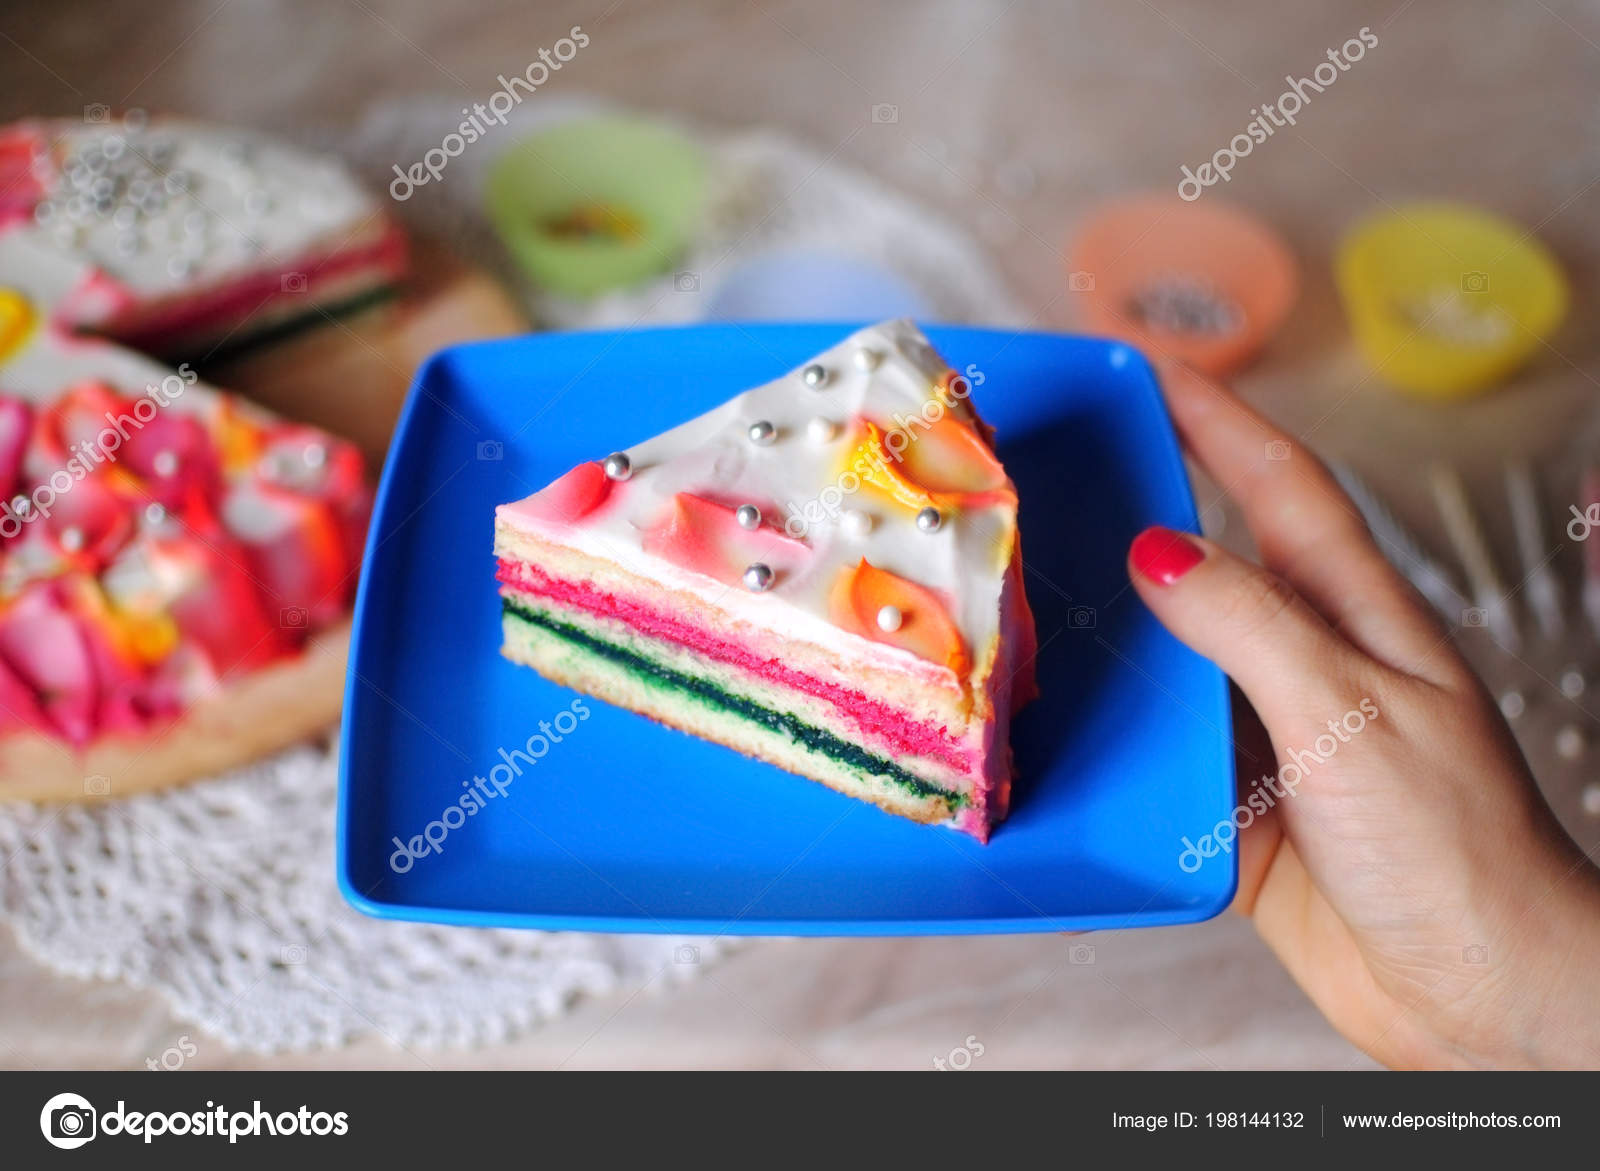 Birthday Cake Festive On A Marble Table Stand In Female Hands Photo By OlhaSafronova